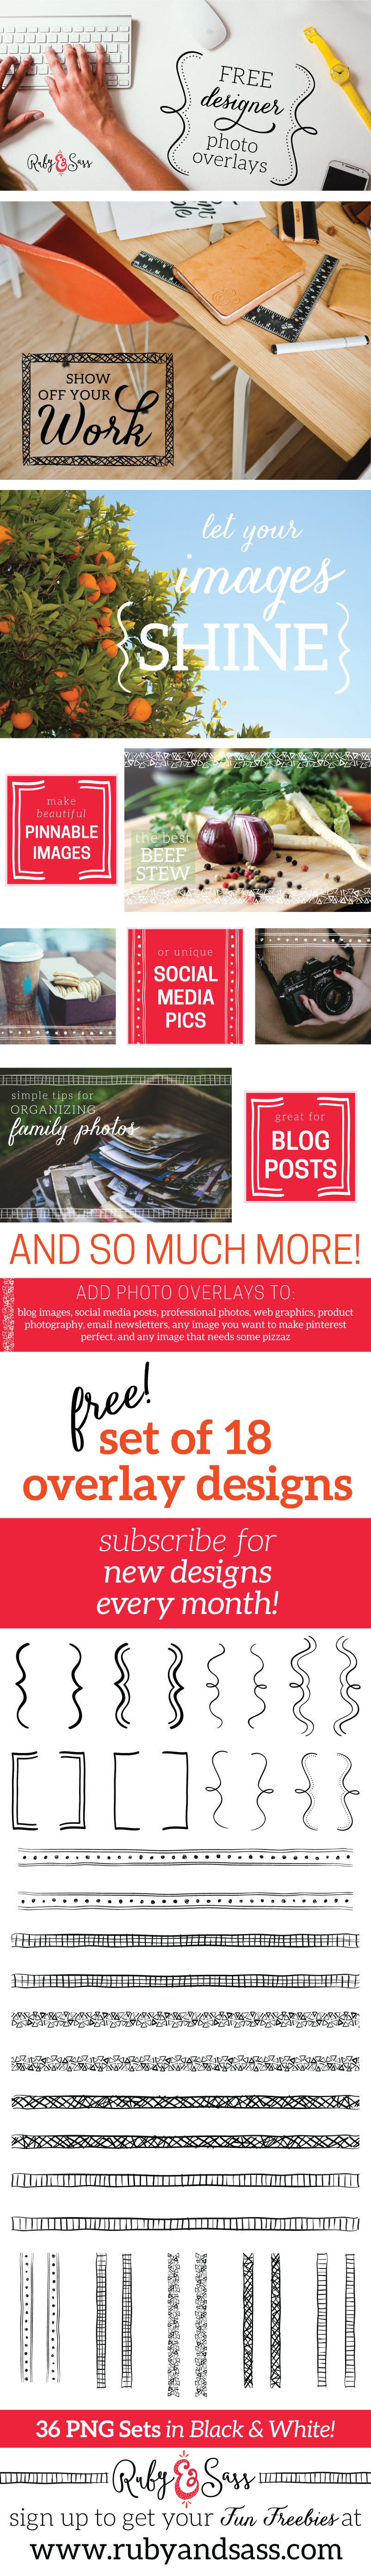 Free Set of 90 Photo Overlays!